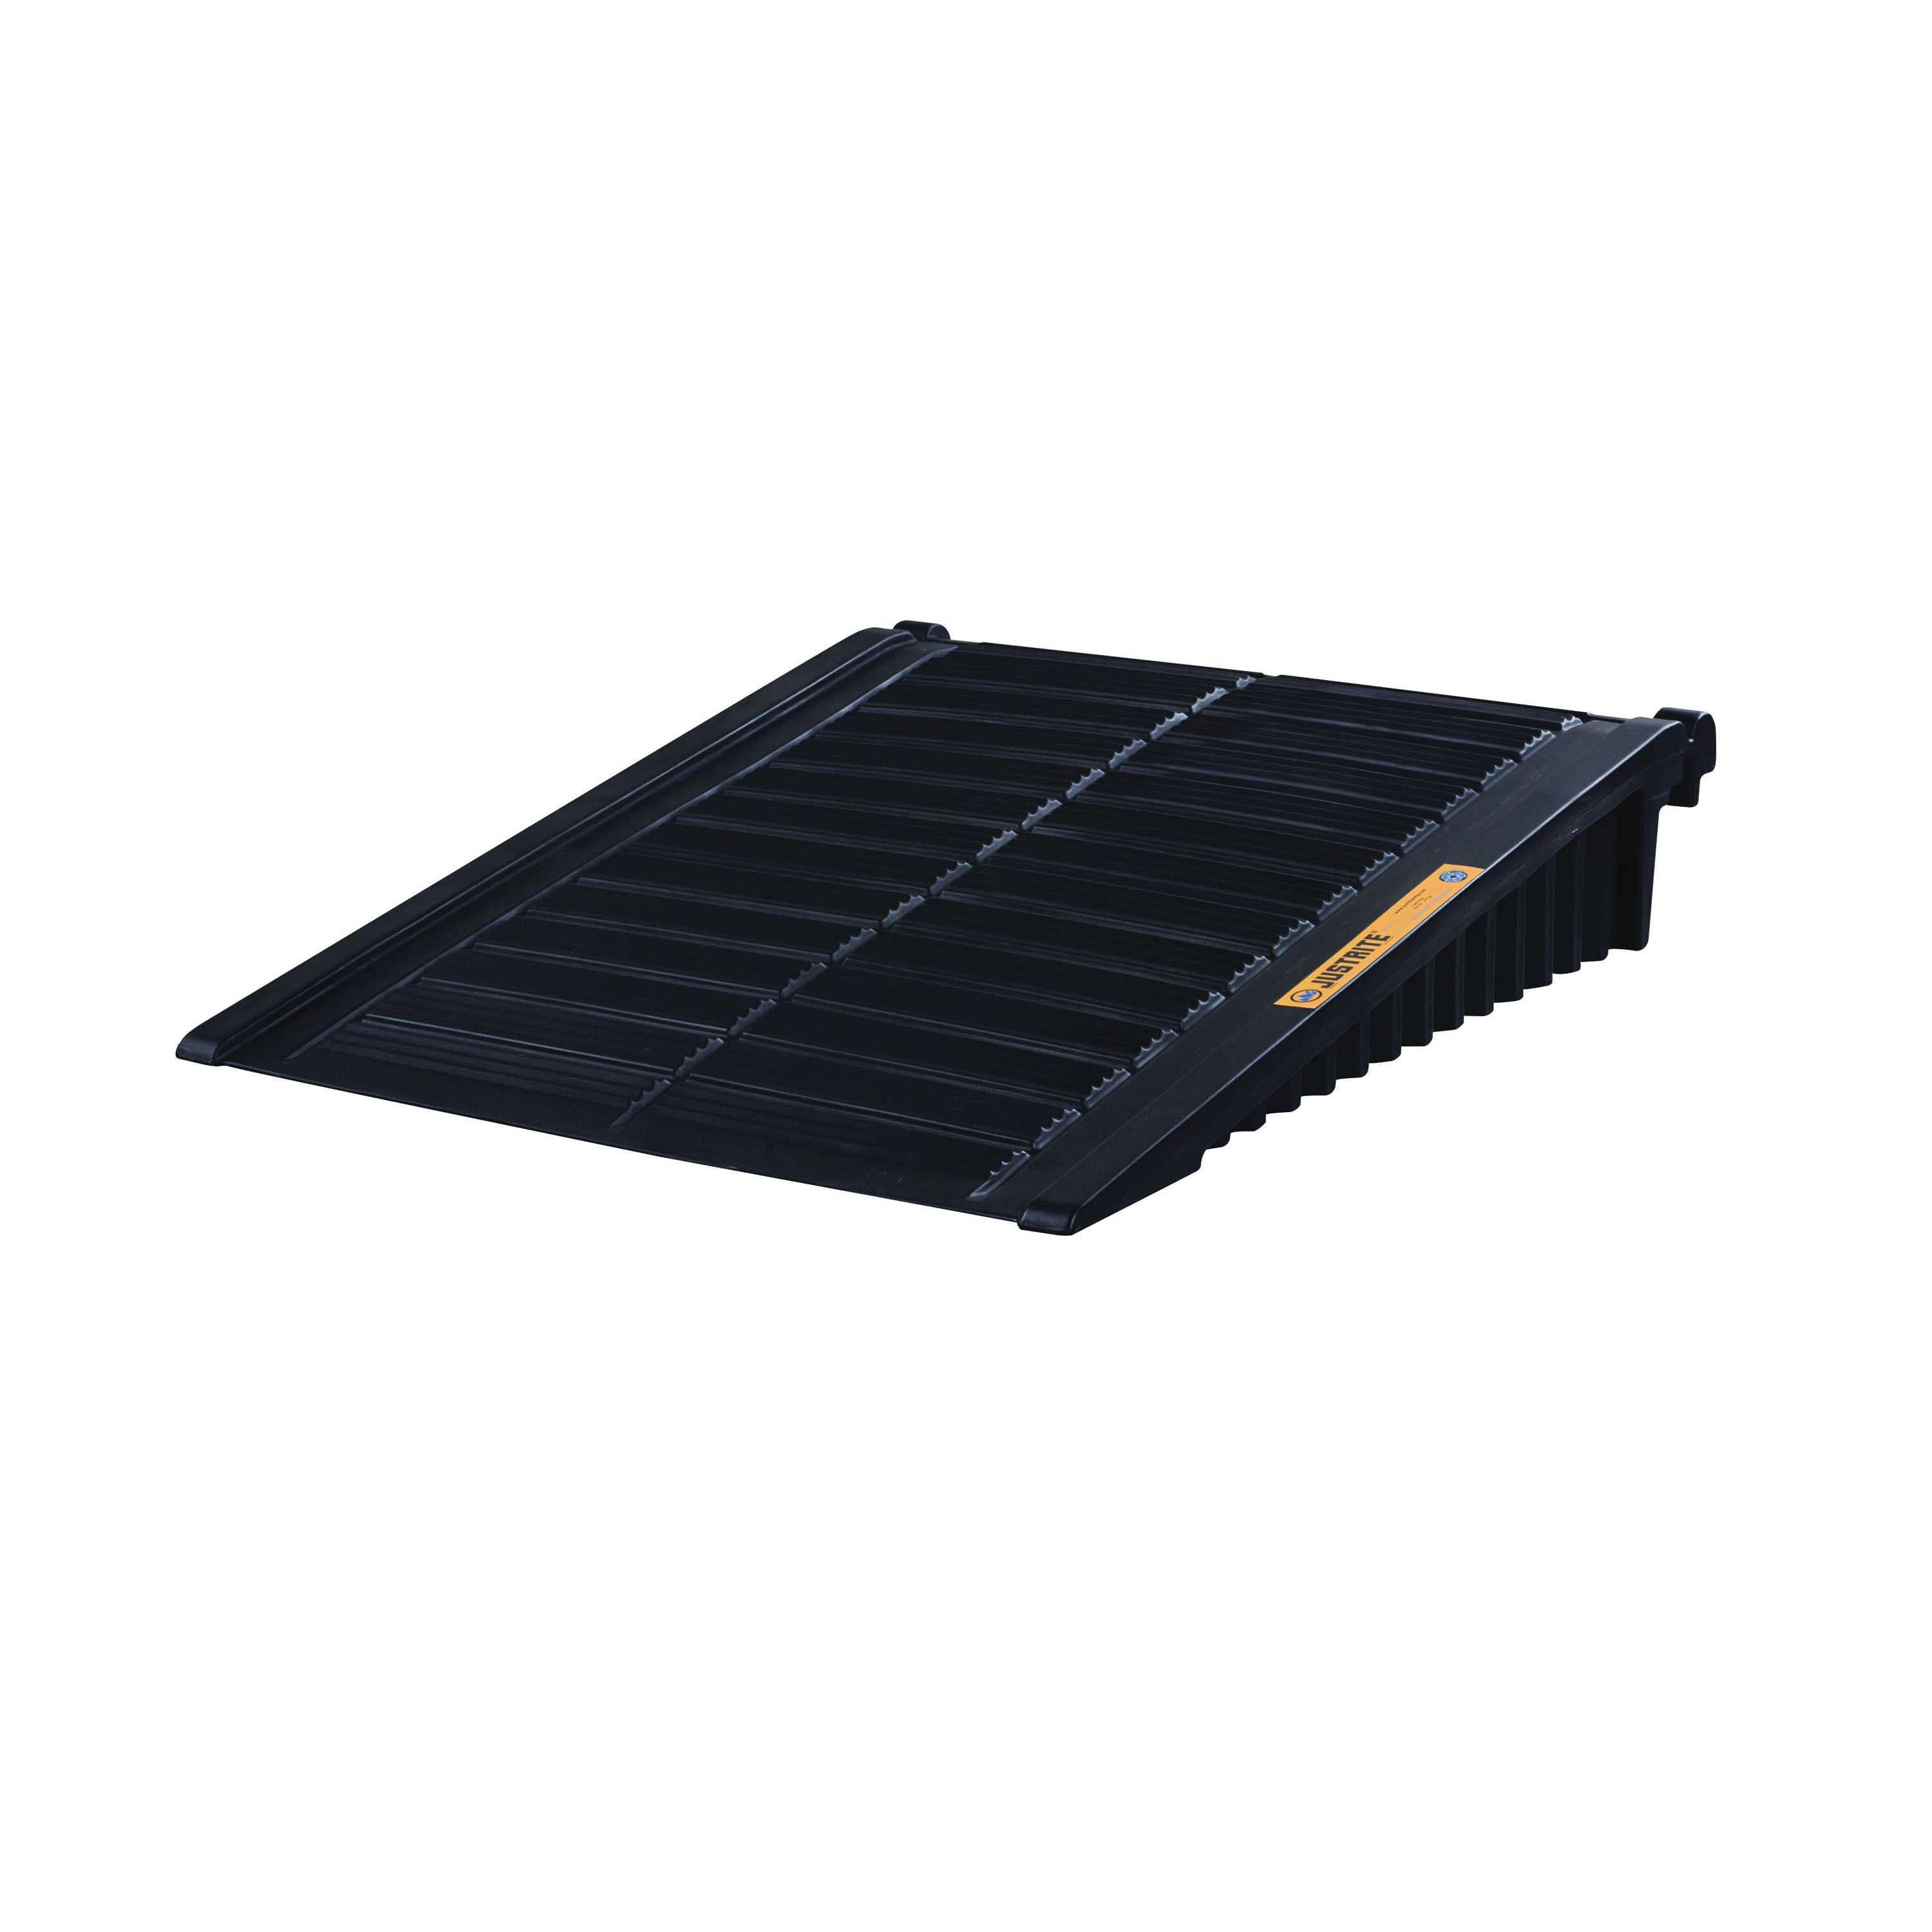 Justrite® 28679 Drum Storage Unit Ramp, 48 in L x 59-3/4 in W x 11-1/4 in H, 1000 lb Load, Recycled Polyethylene